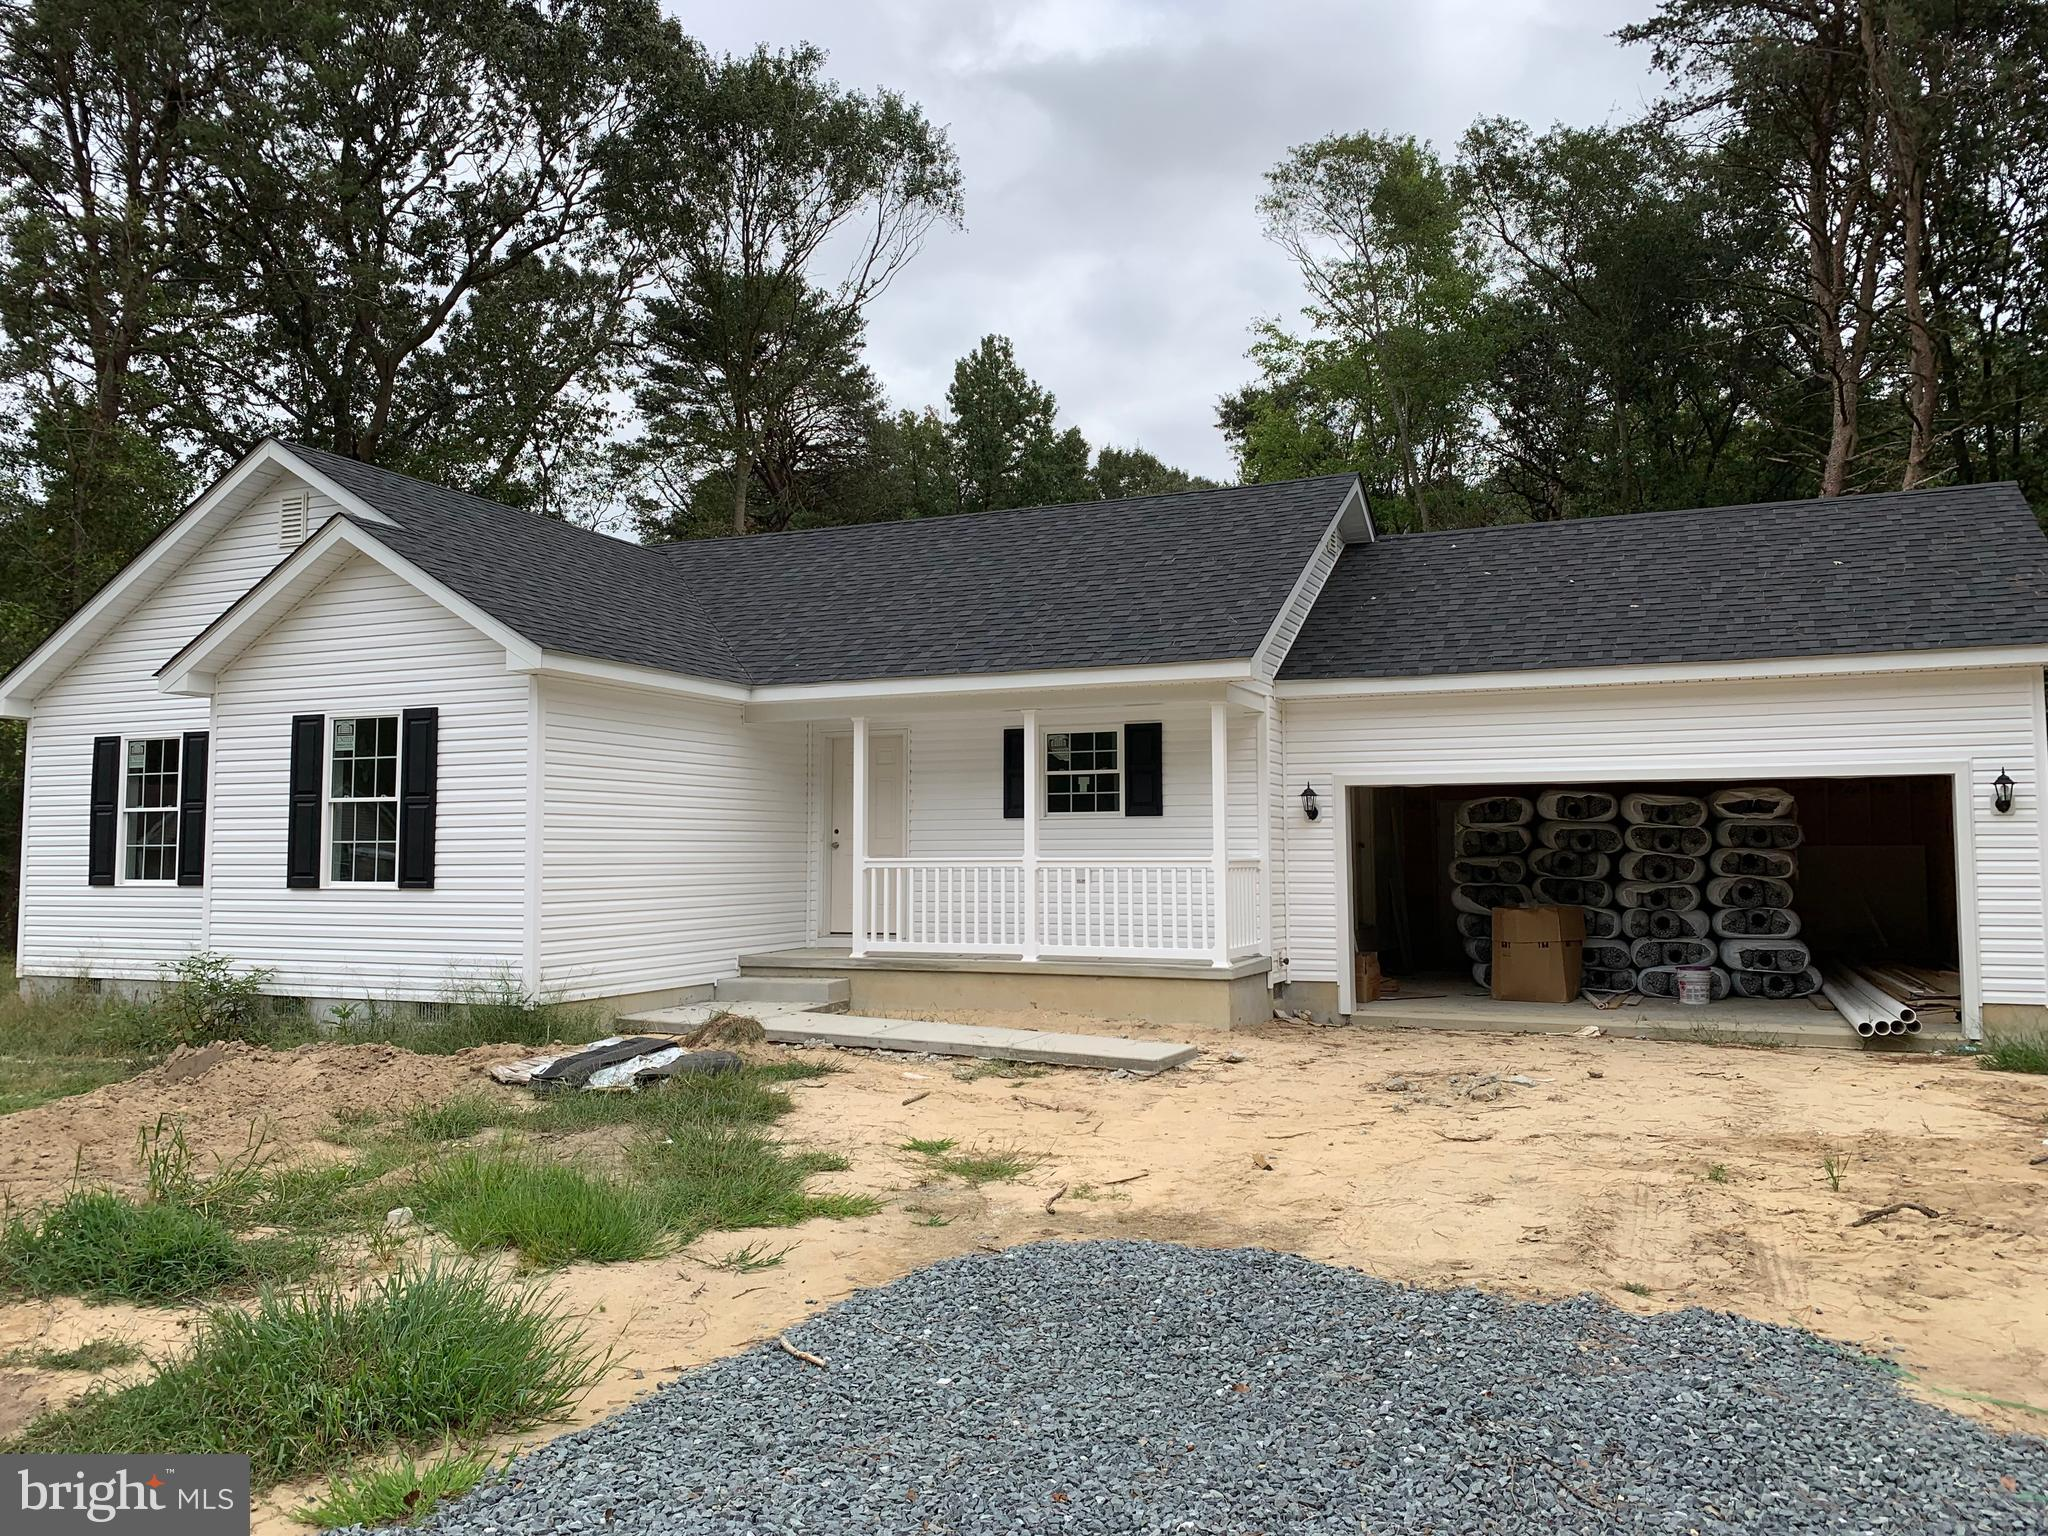 New Construction in Hill n Dale.  This home offers 3 bedrooms and 2 baths with attached 2 car garage